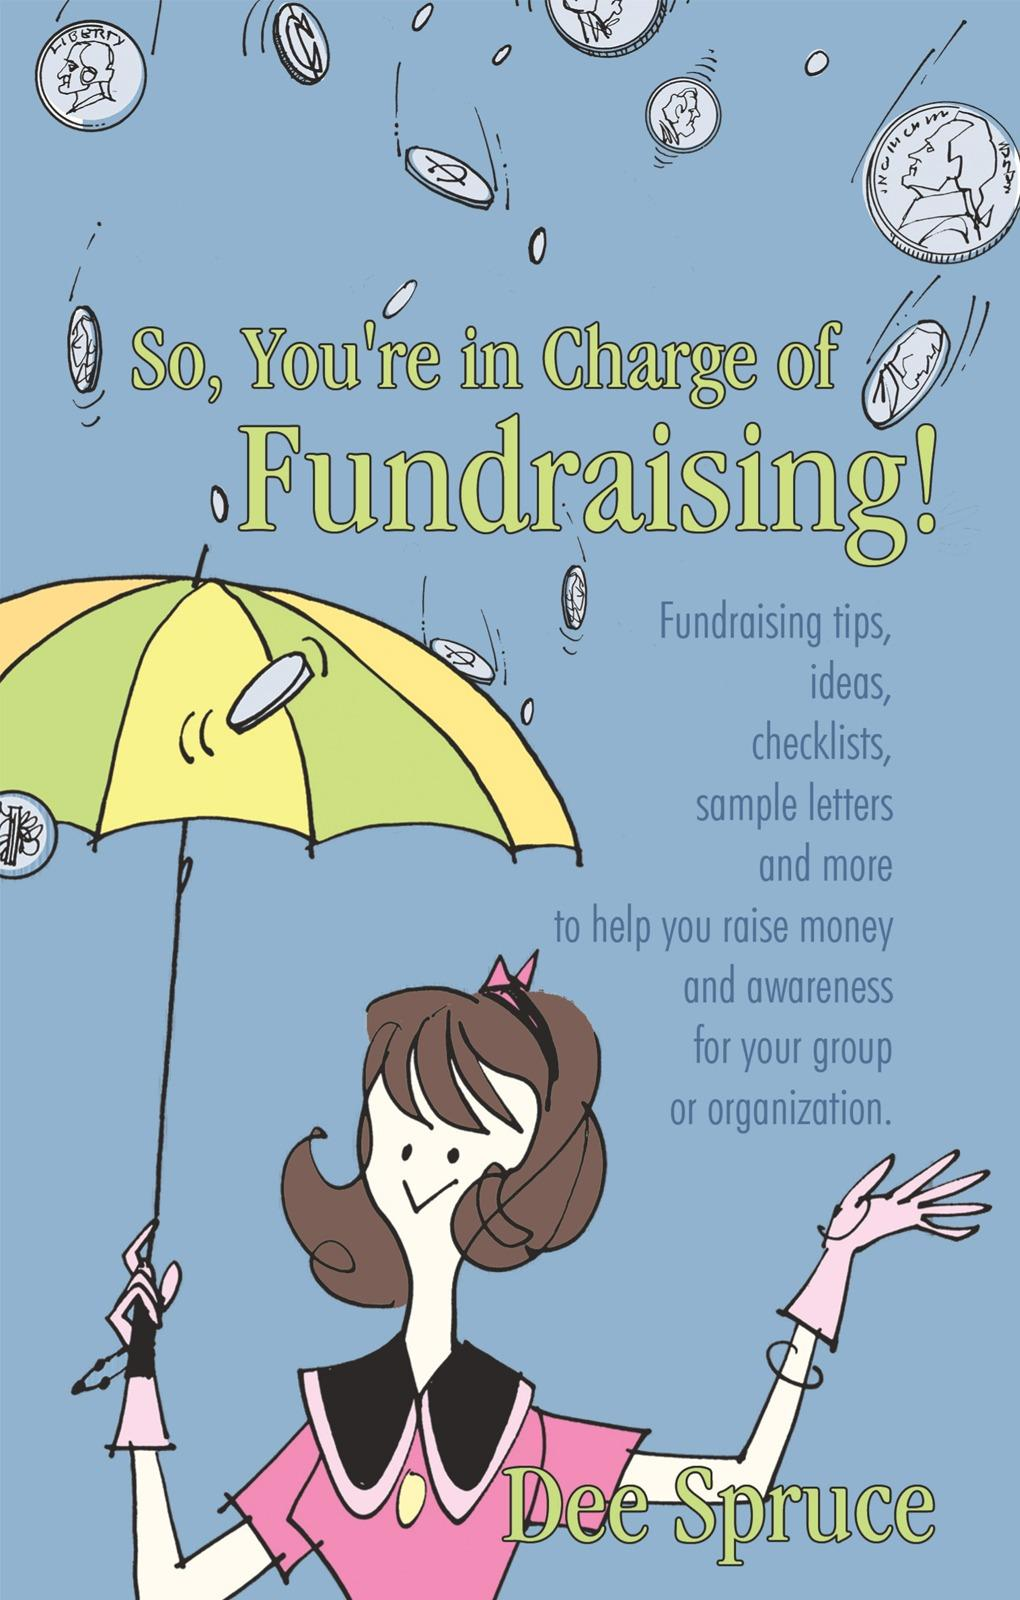 So, You're in Charge of Fundraising!: Fundraising tips, ideas, checklists, sample letters and more to help you raise money and awareness for your grou EB9781450270199